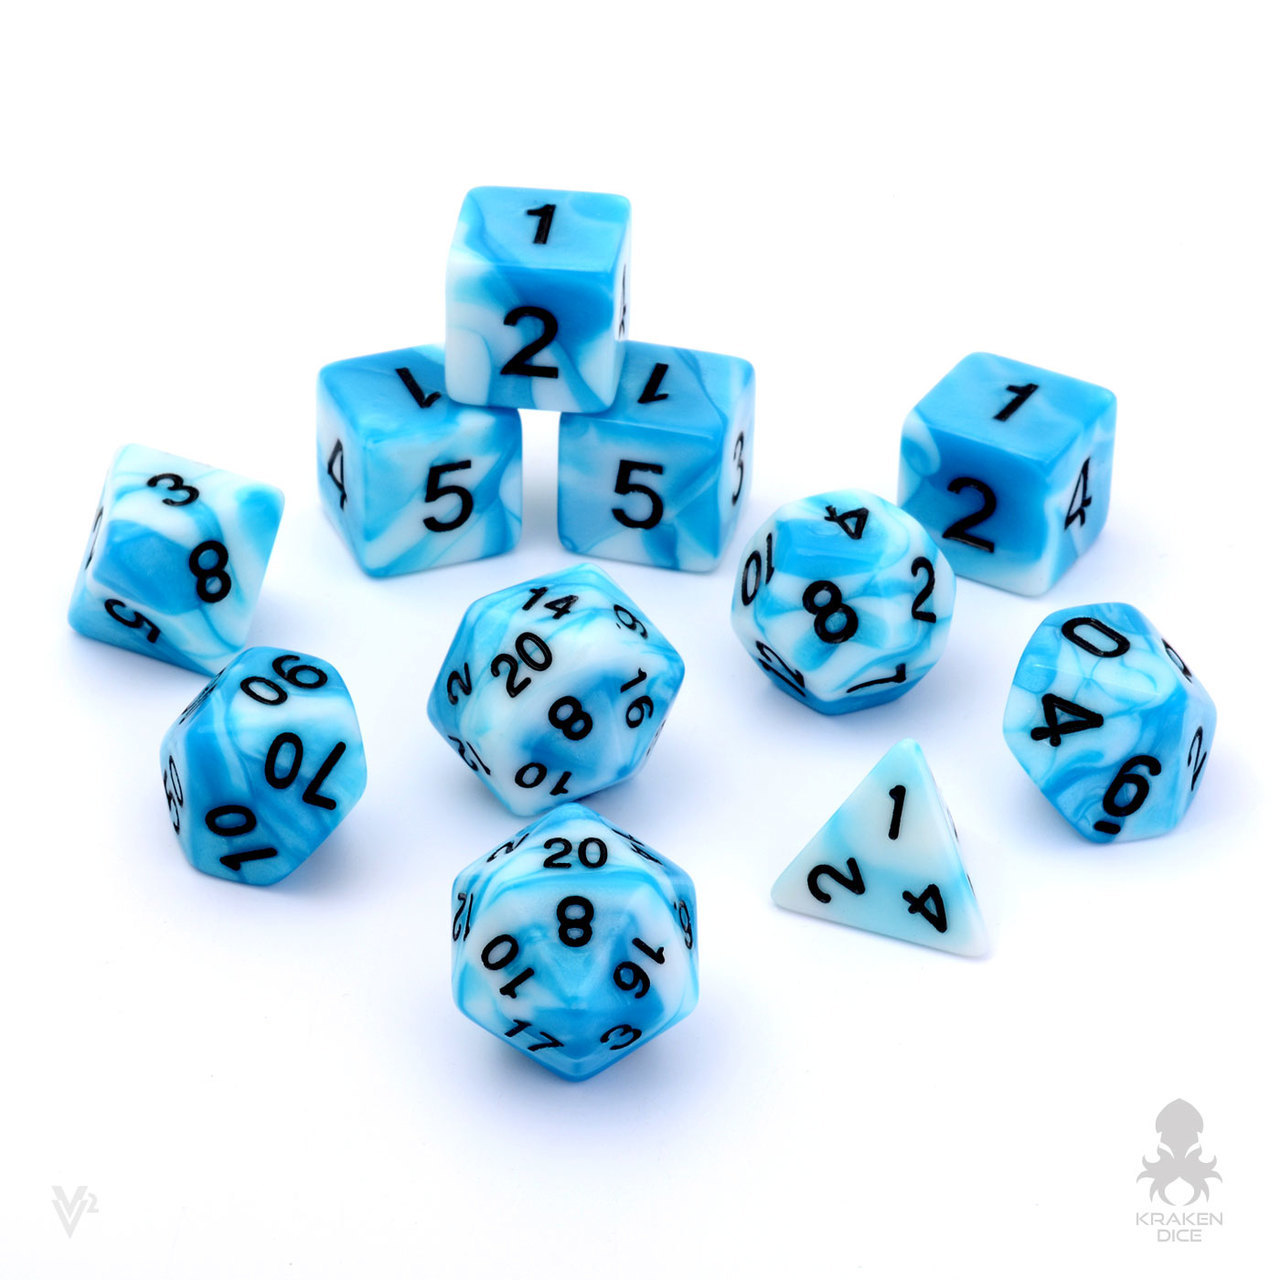 KD0142-Cyan-White-Fusion-RPG-DnD-dice-set__28687.1530054402